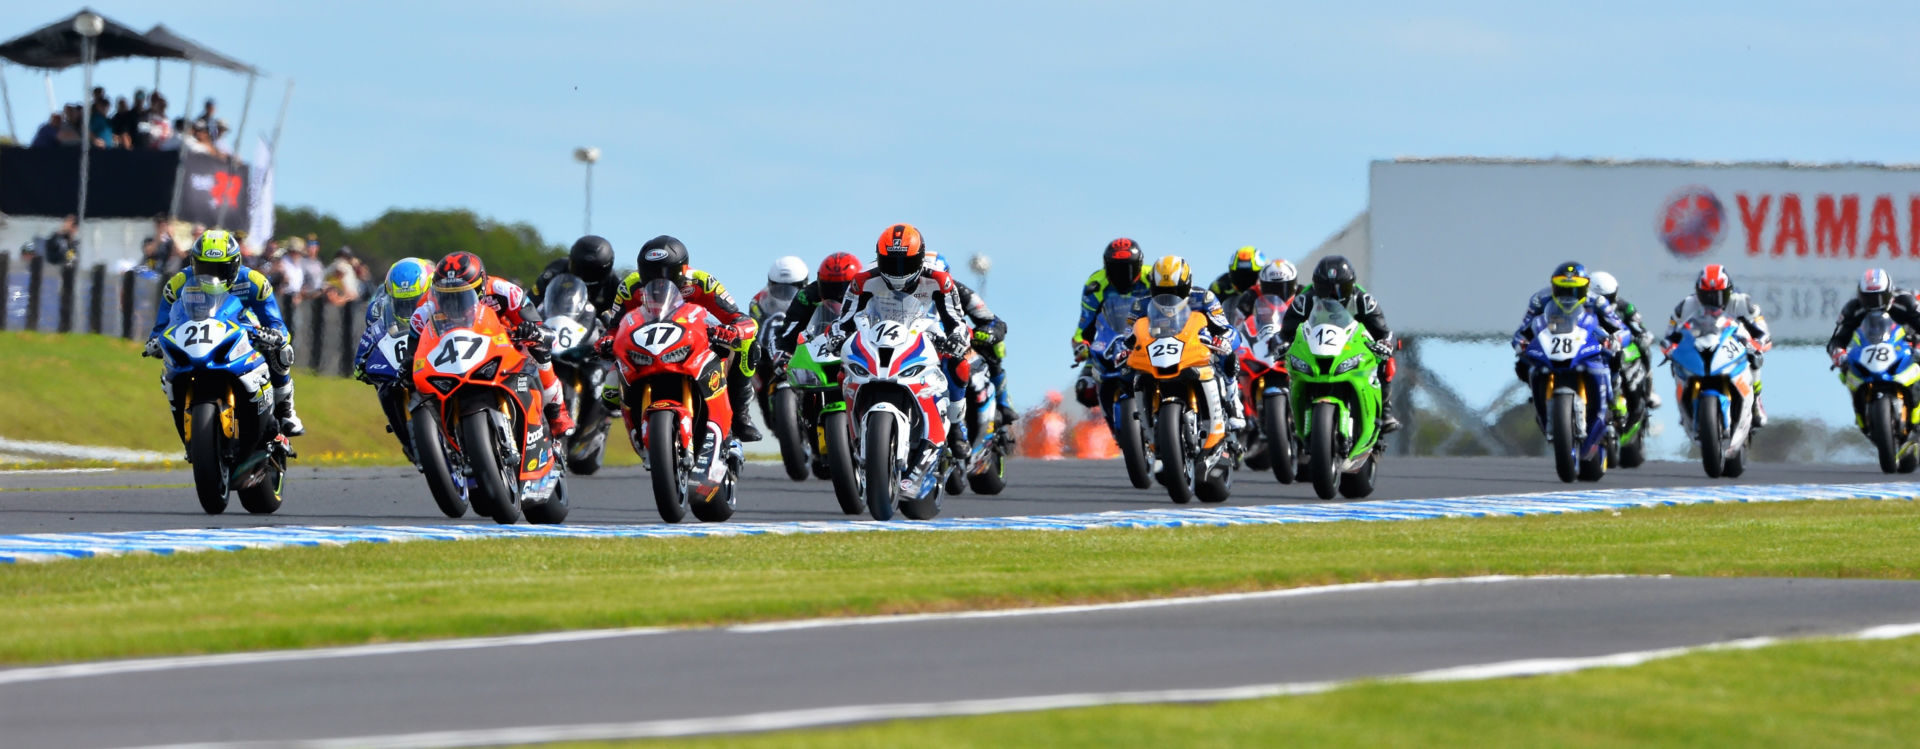 The start of an Australian Superbike race at Phillip Island in February. Photo courtesy Motorcycling Australia.